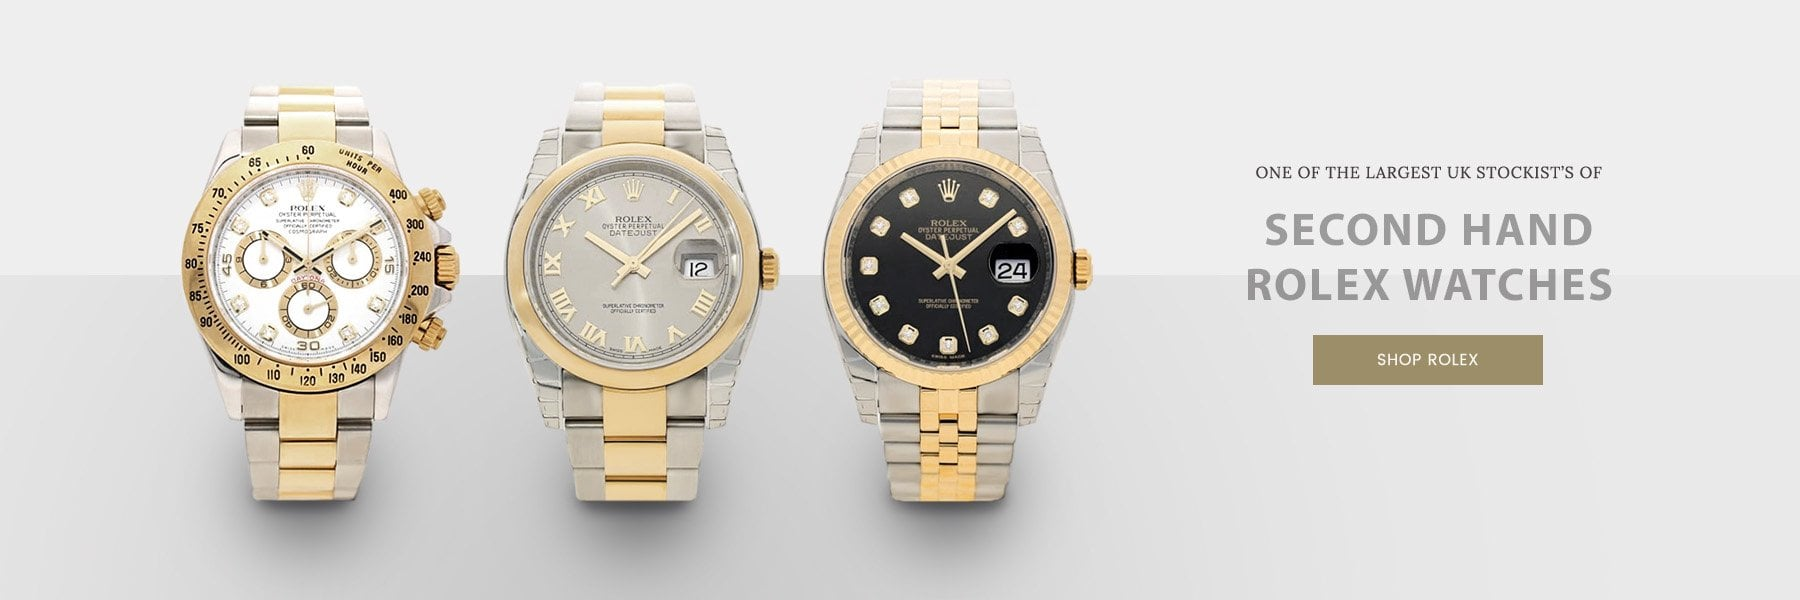 1a8427e3f71 Second Hand Rolex. Ring Buying Guide. Browse Our Departments. Womens Watches.  Womens Jewellery. Mens Jewellery. Mens Watches